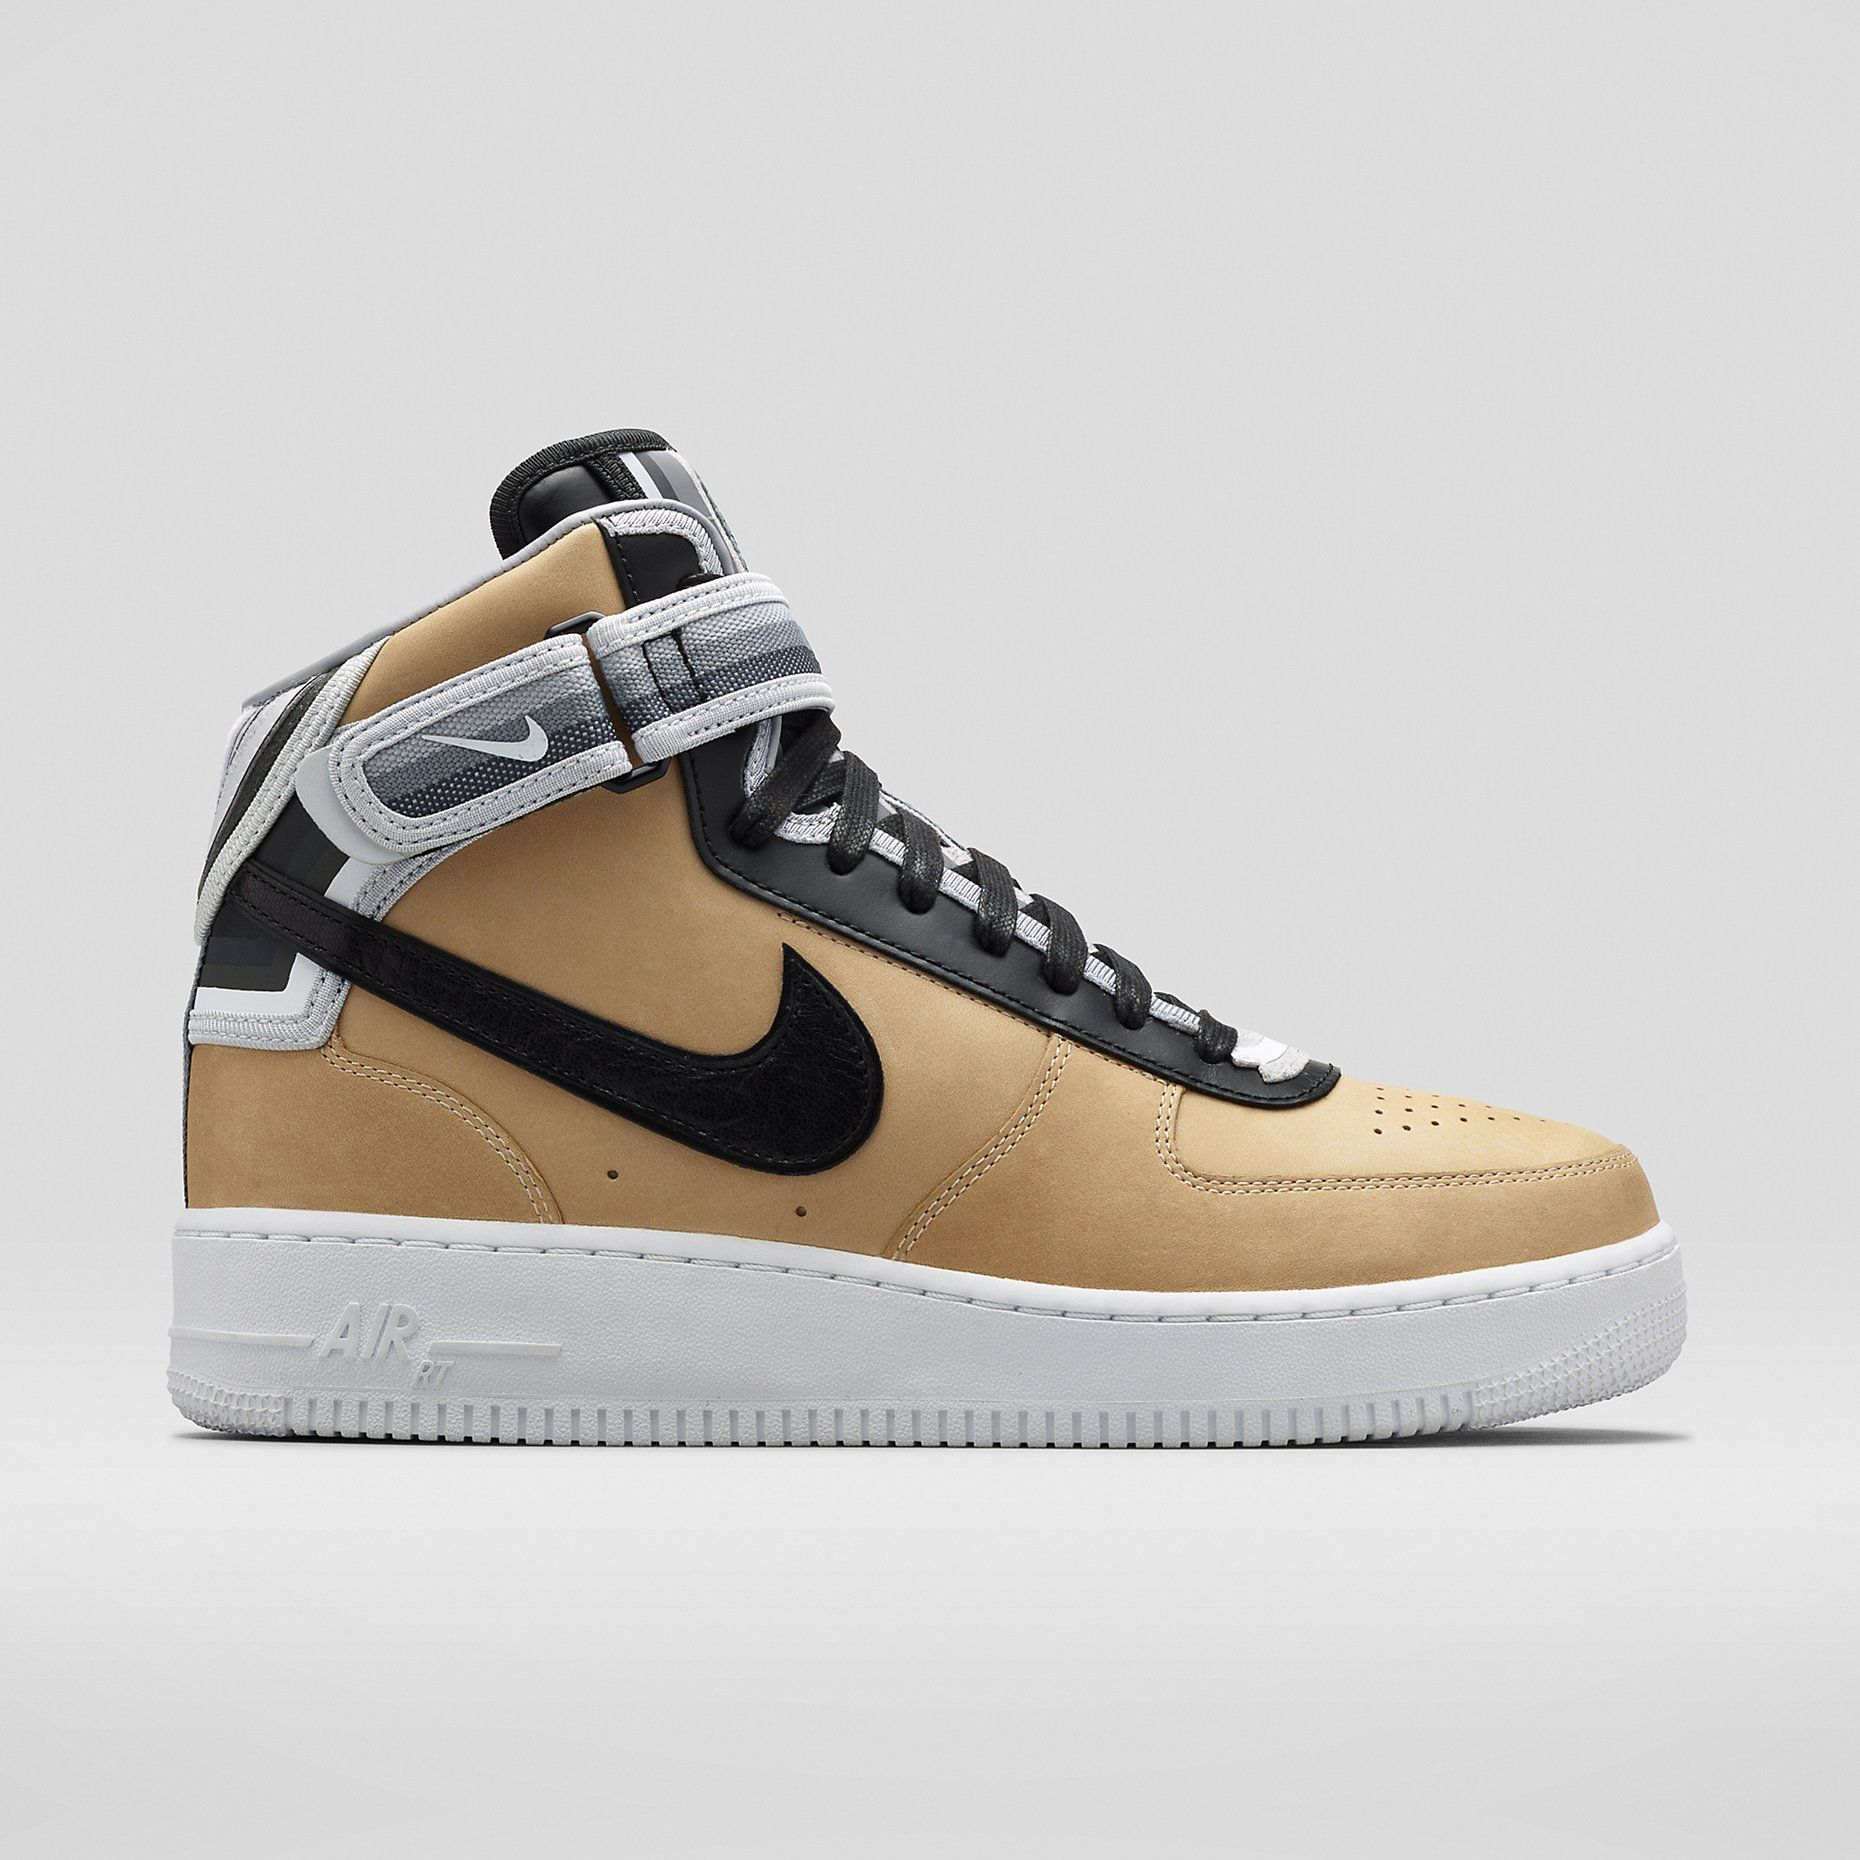 taille 40 0ad3f 927c5 Nike Air Force 1 Mid (Tisci) – Chaussure pour Homme. Nike ...